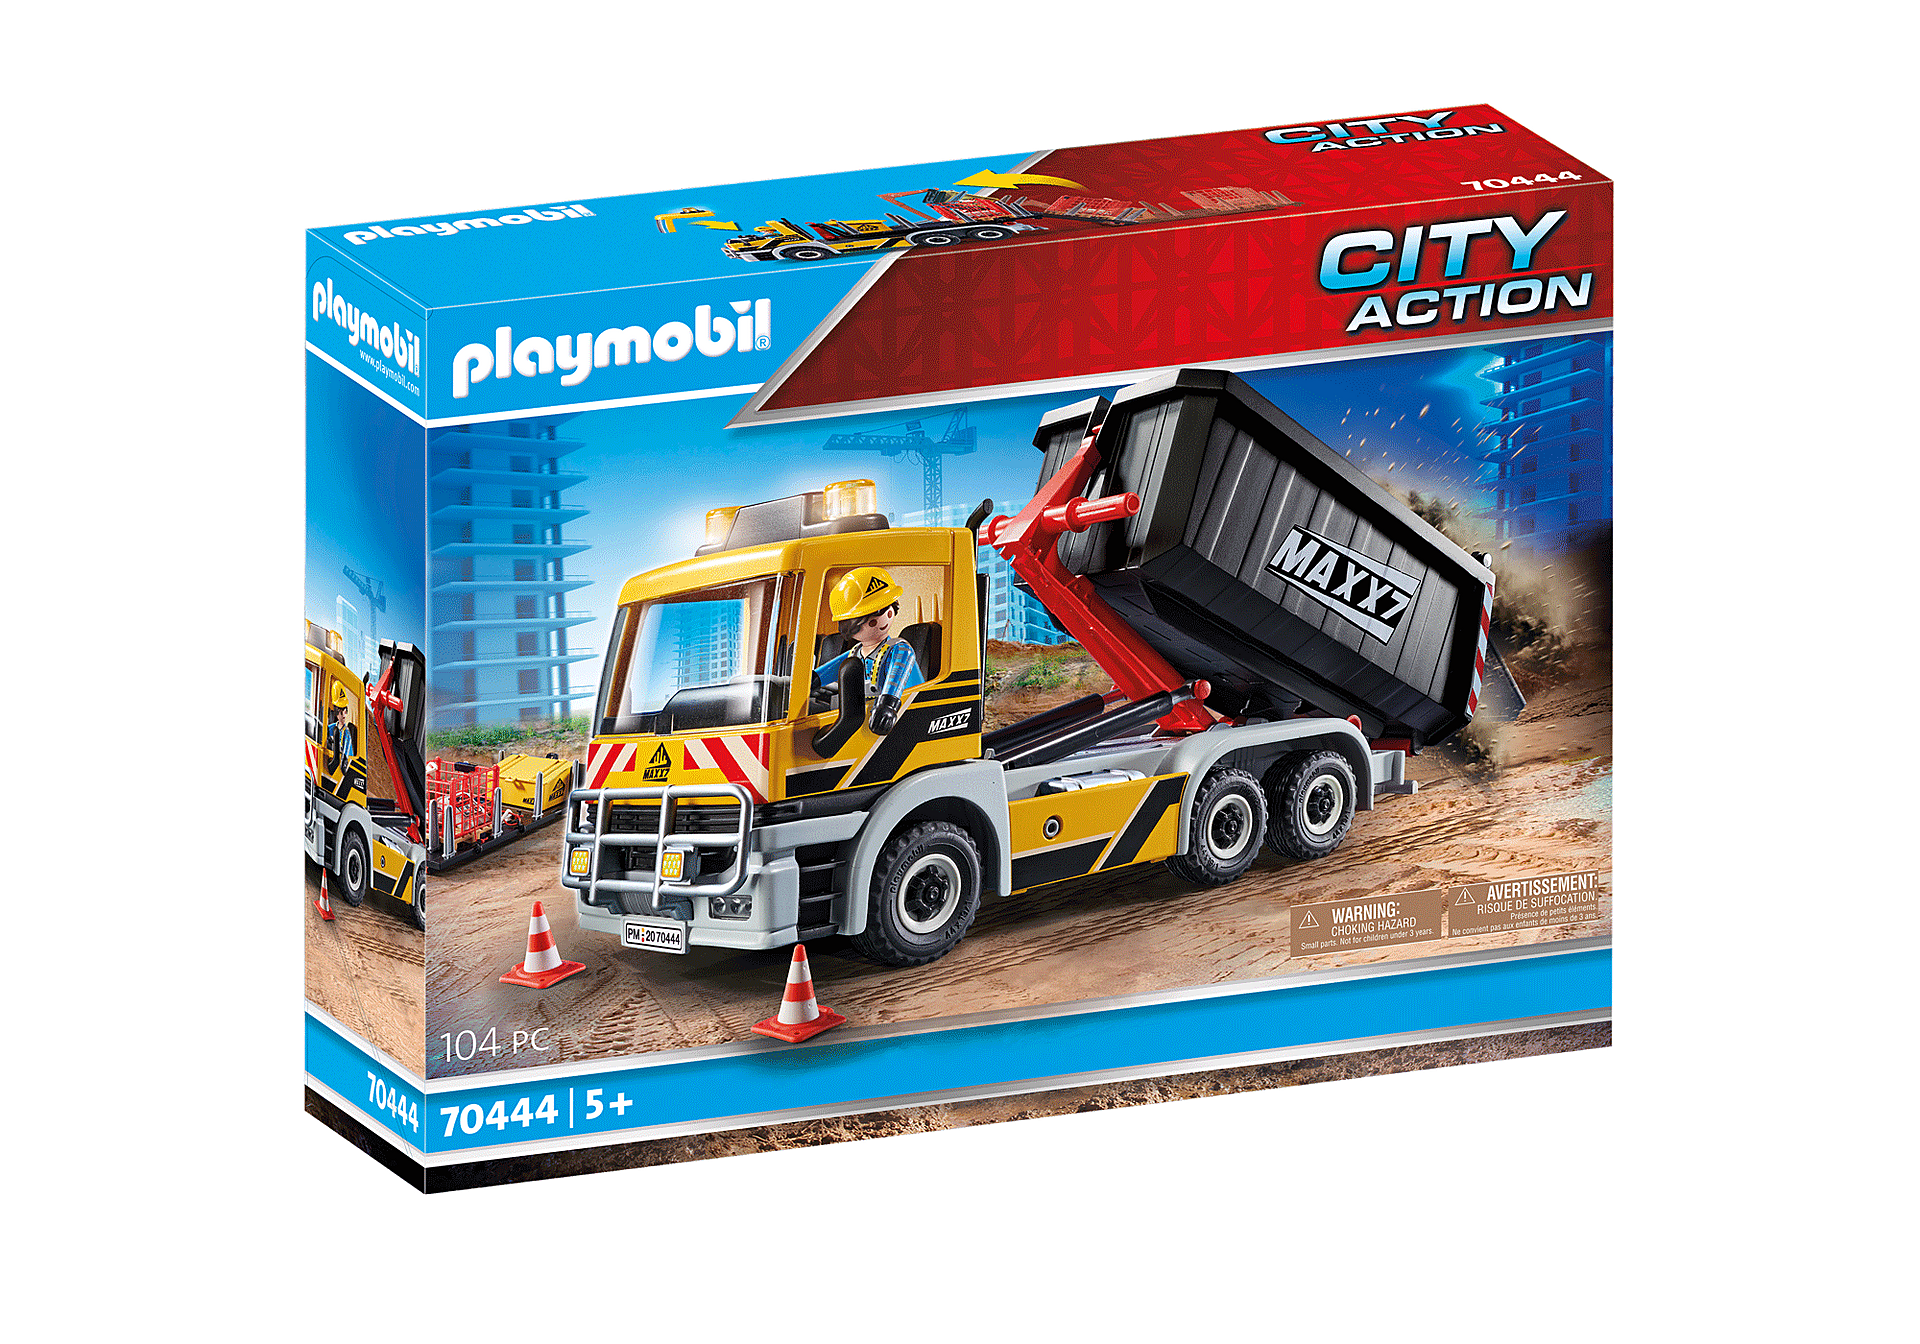 Playmobil City Action 70444 Interchangeable Truck